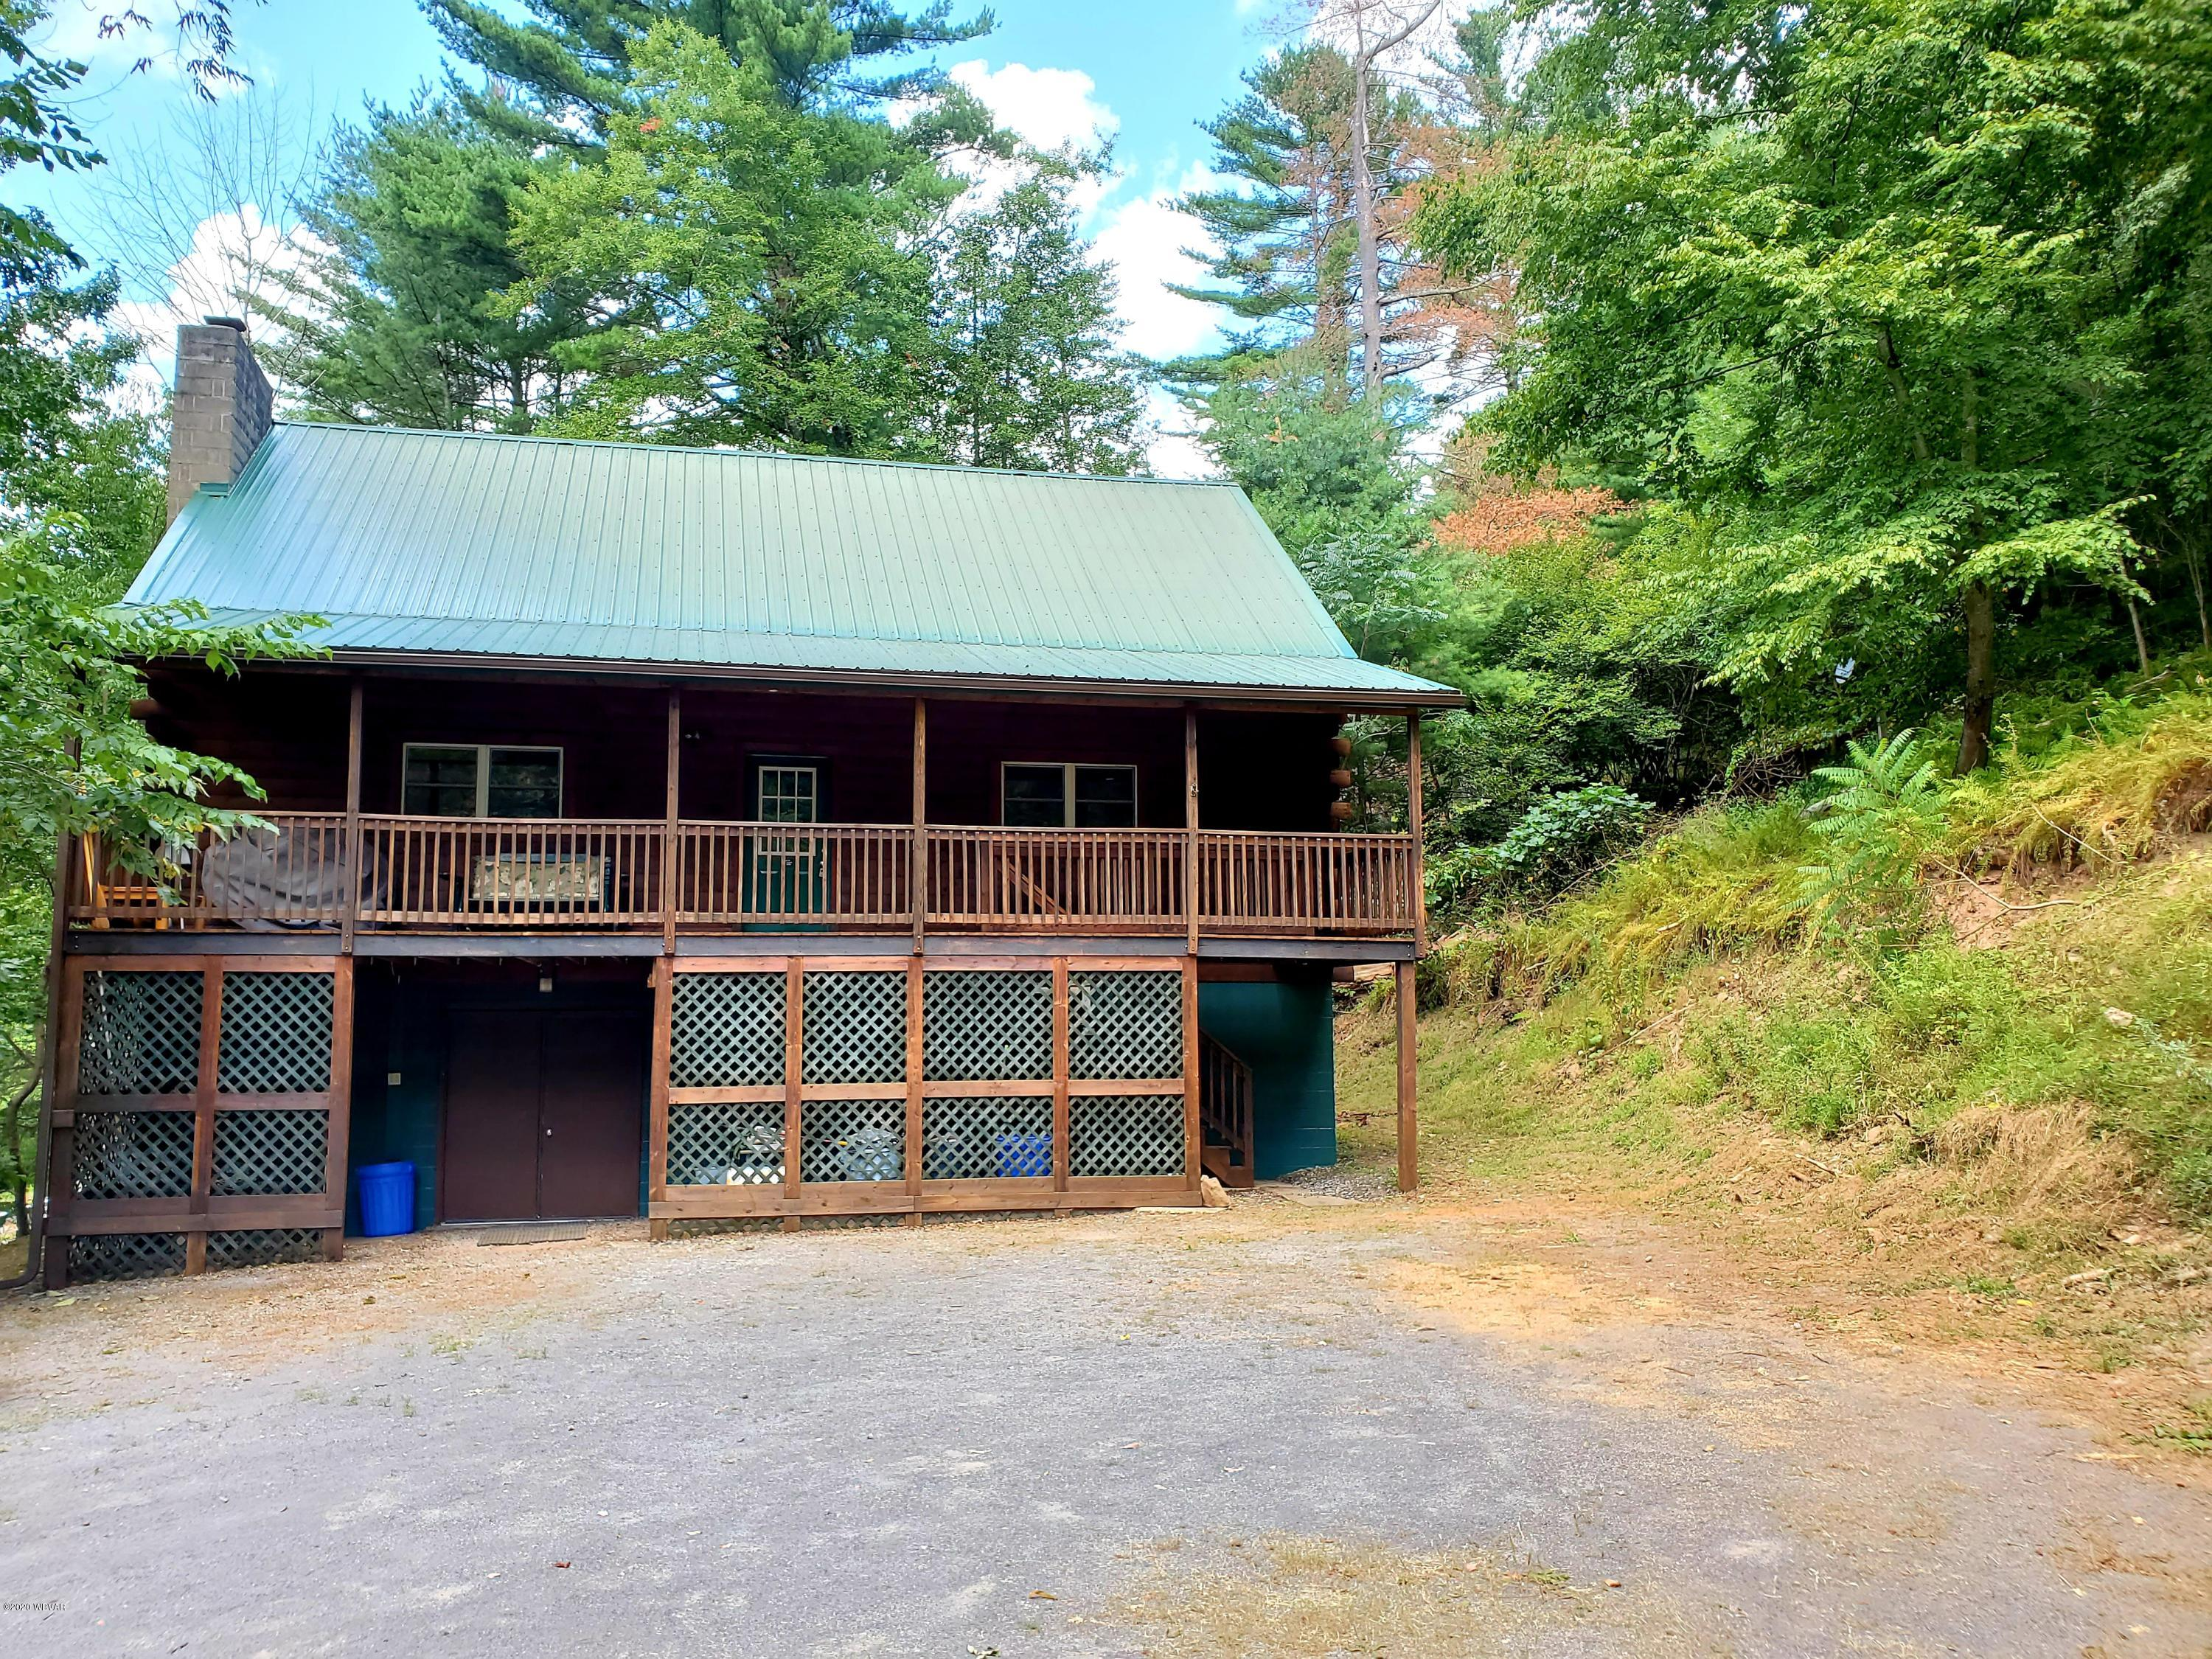 8988 STATE RTE 414 ROUTE, Cammal, PA 17723, 2 Bedrooms Bedrooms, ,2 BathroomsBathrooms,Residential,For sale,STATE RTE 414,WB-90926